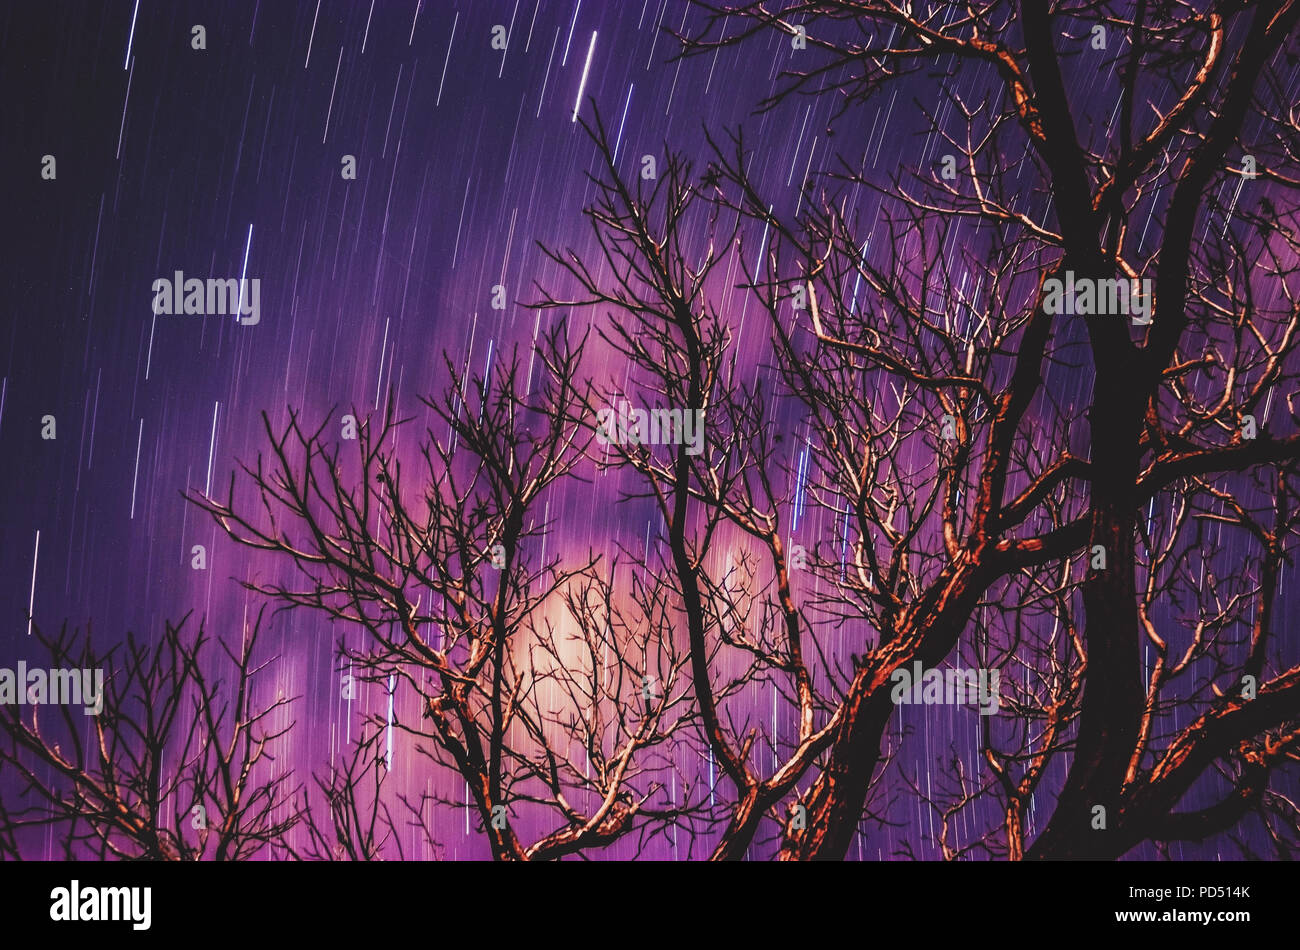 Stars traces on a long exposure photo of the sky at night and a soft blurred tree branches silhouette on foreground. Purple tones sky. - Stock Image